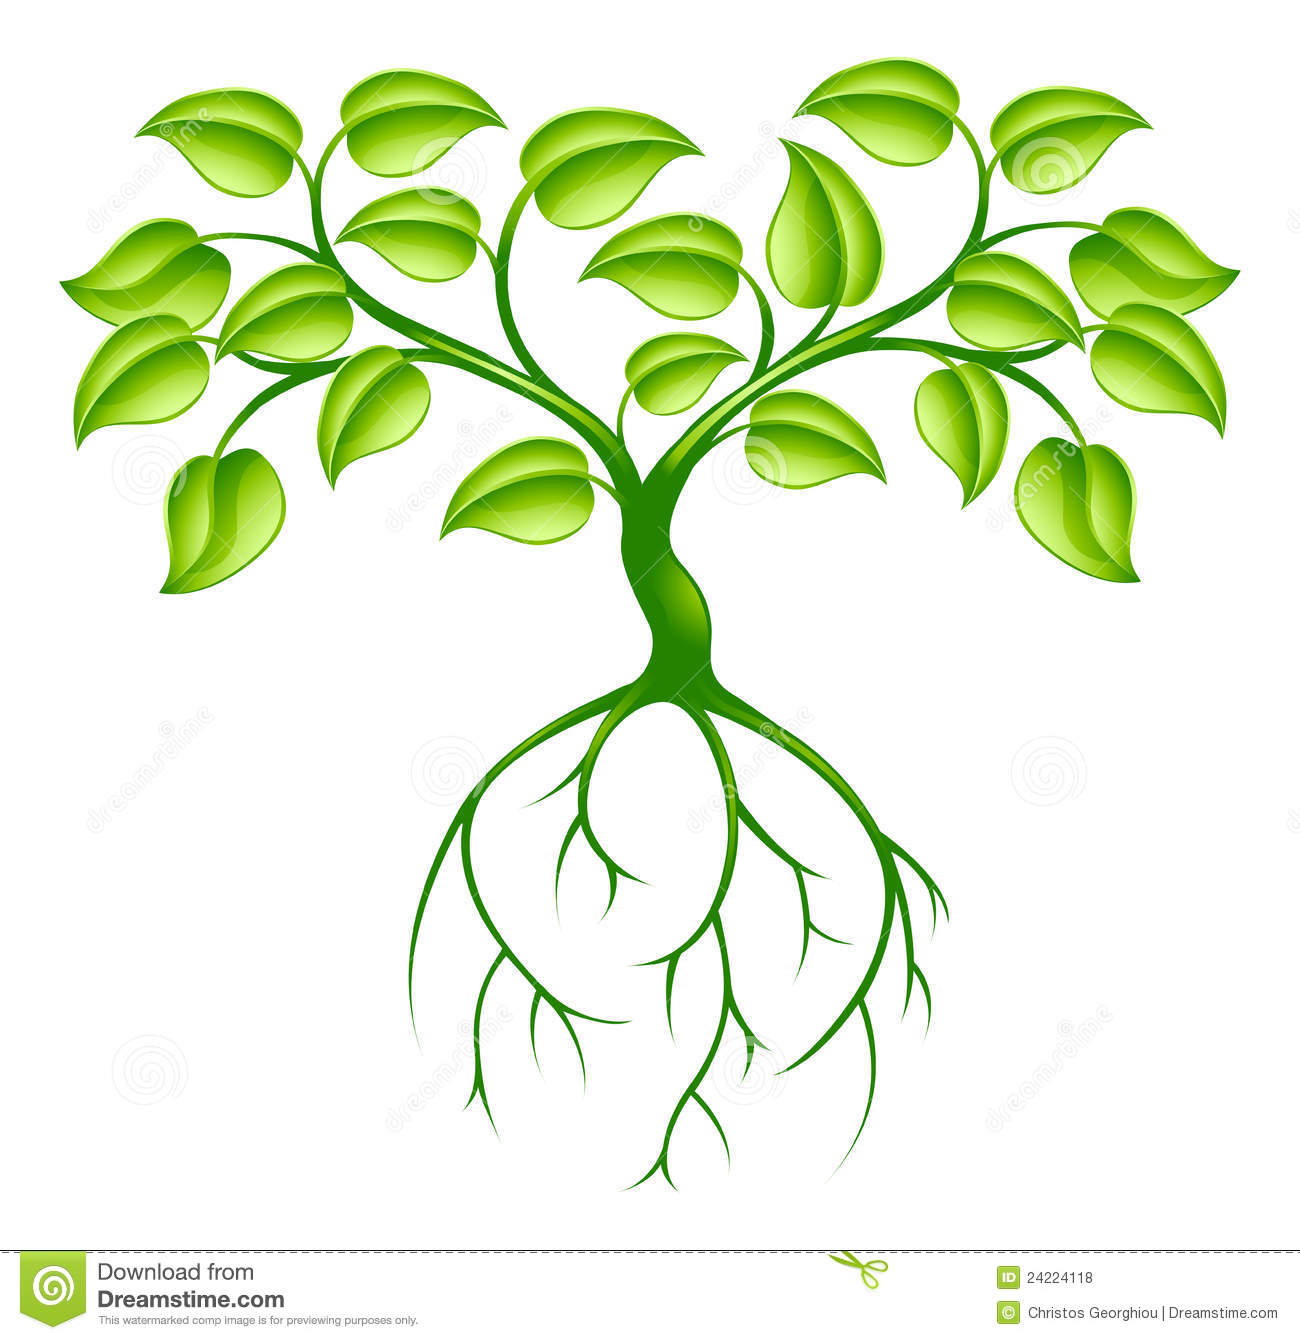 Clip Art Tree With Roots Clipart Panda F-Clip Art Tree With Roots Clipart Panda Free Clipart Images-5